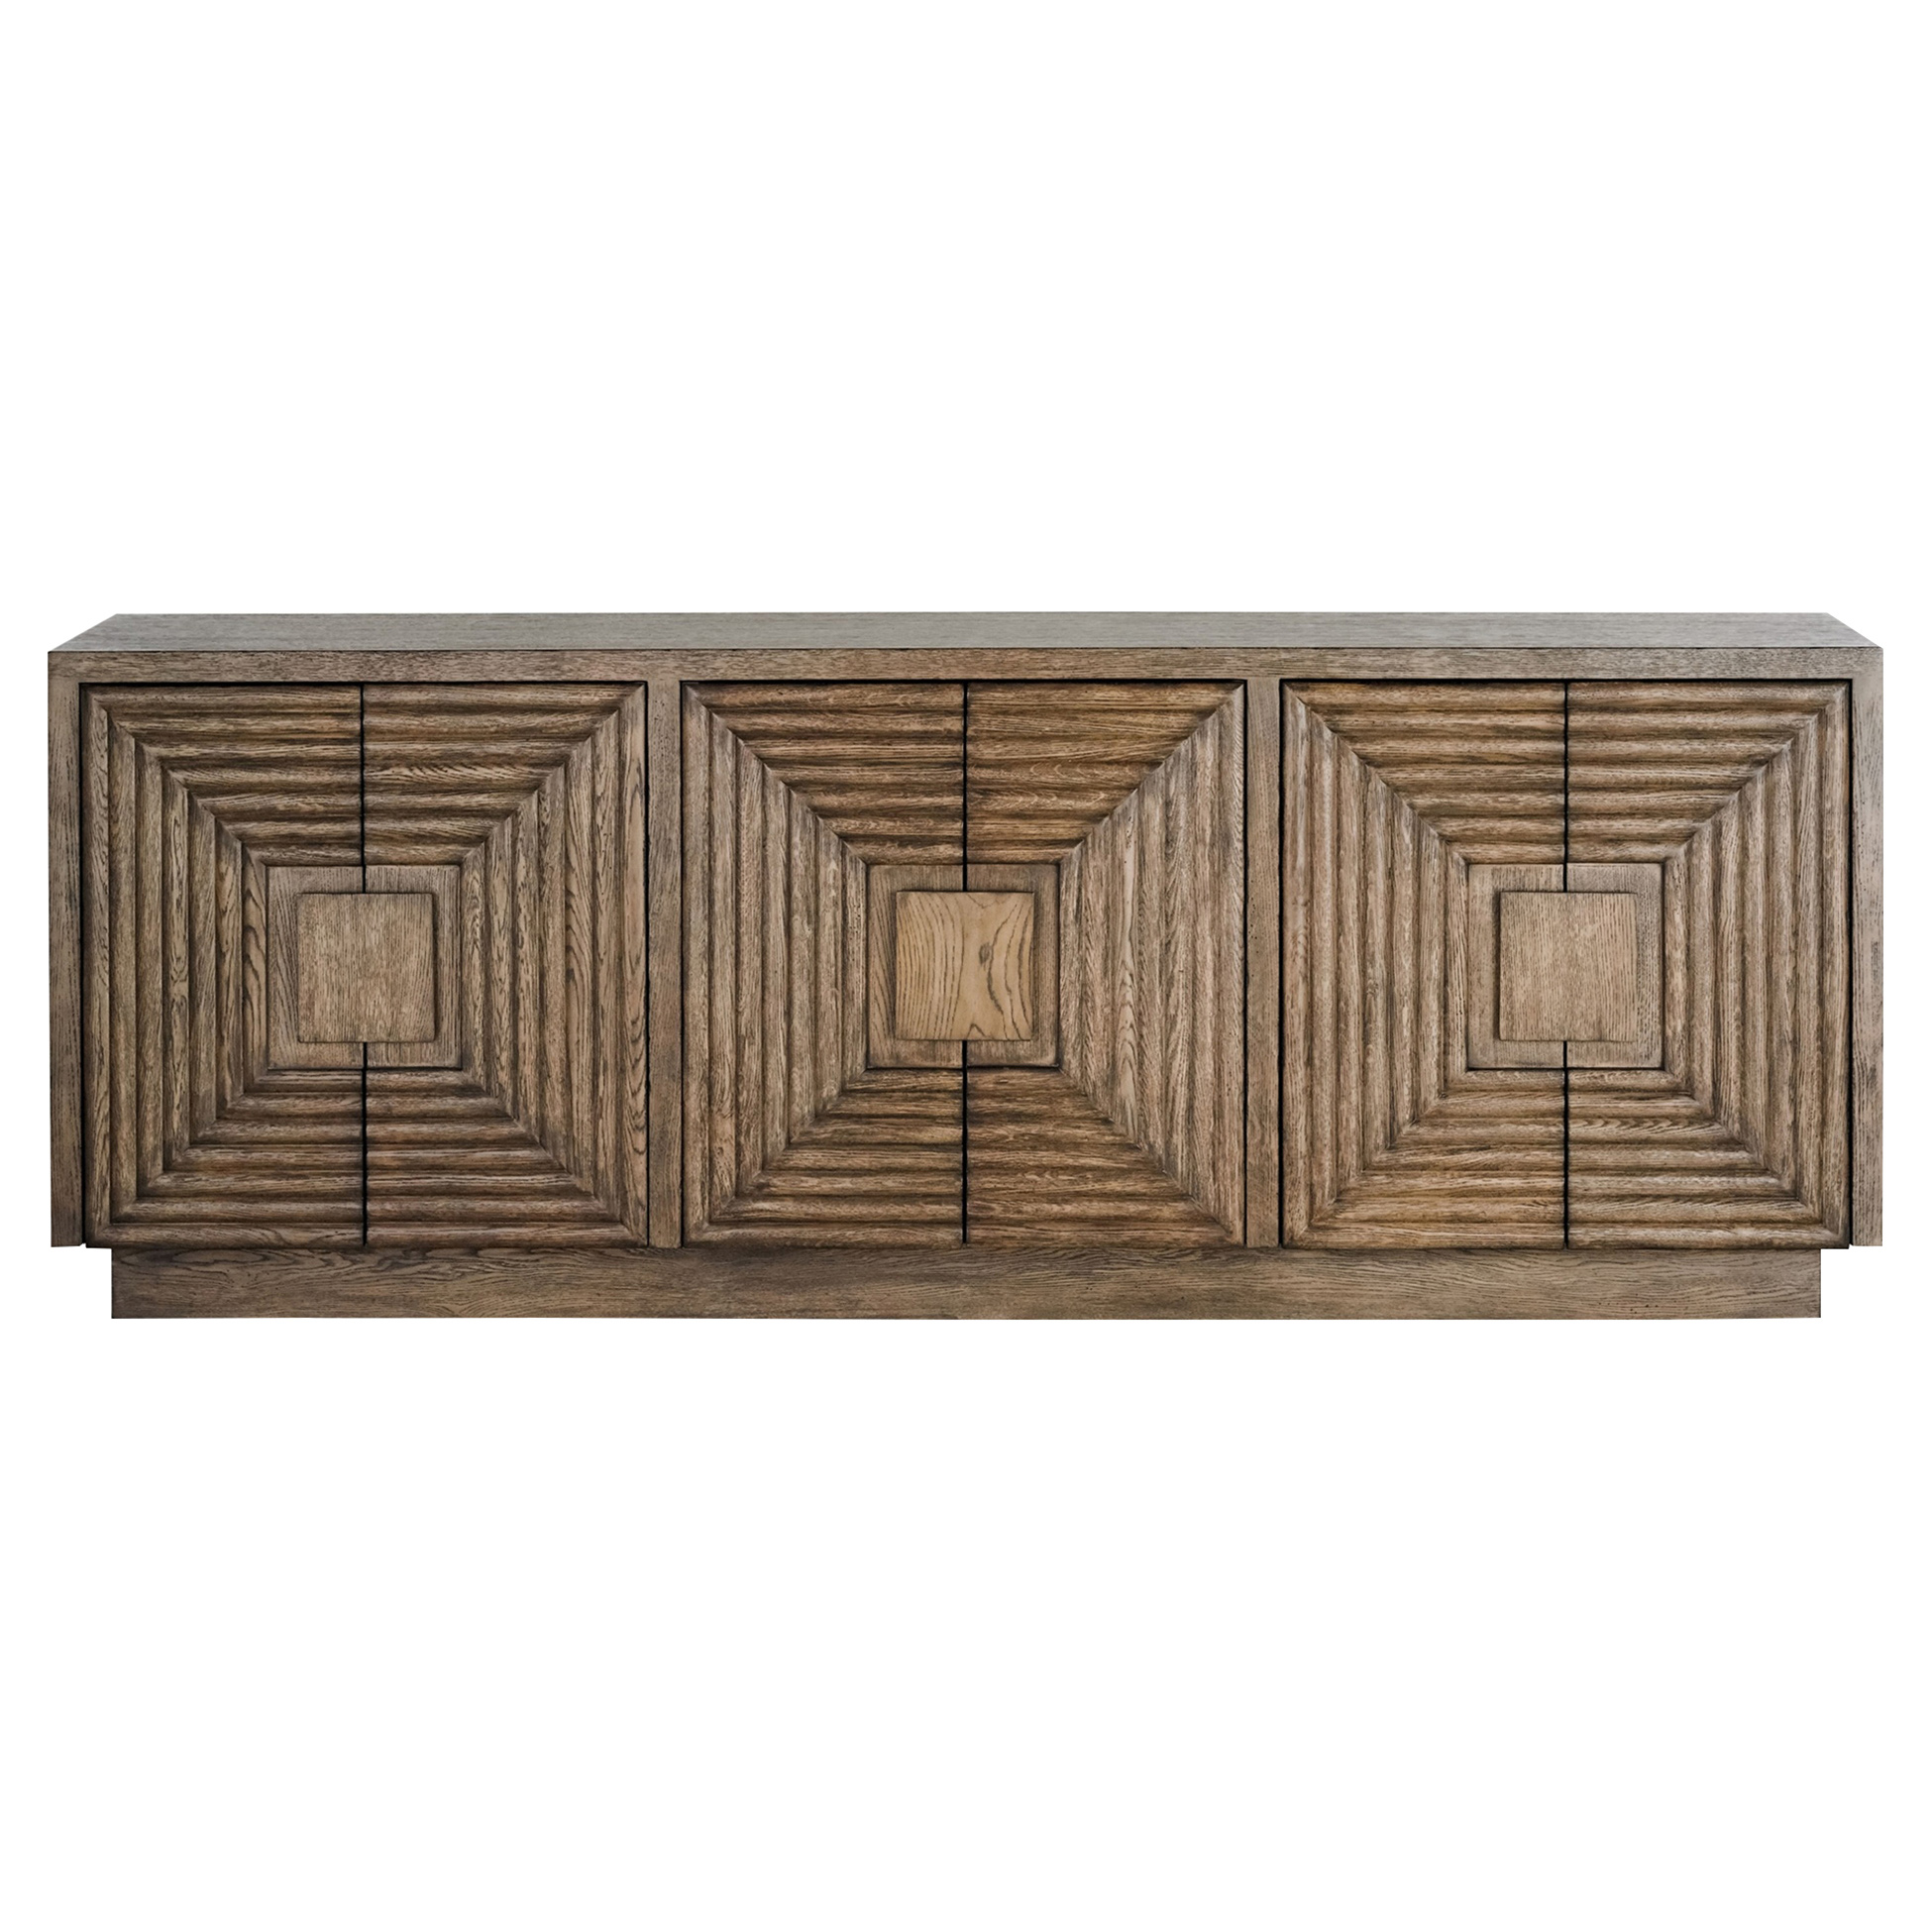 Bronwyn Rustic Lodge Square Pattern Natural Wood Credenza